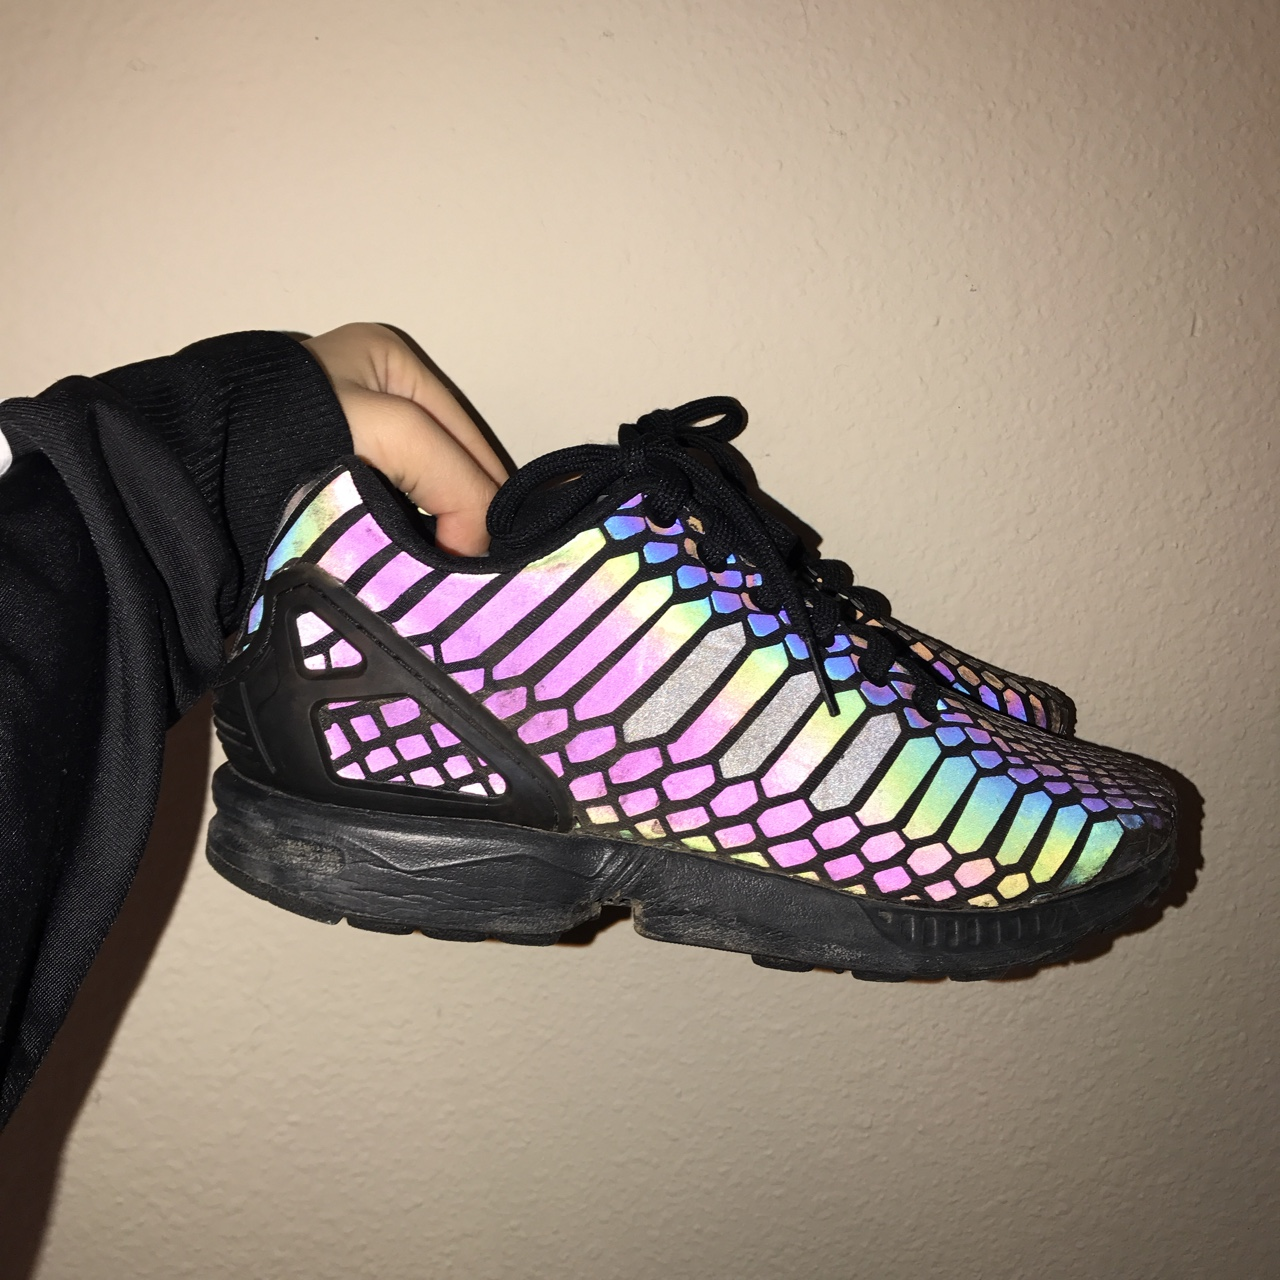 check out 23d29 a299f Adidas Zx Flux Xeno Black | In Good Condition | The... - Depop